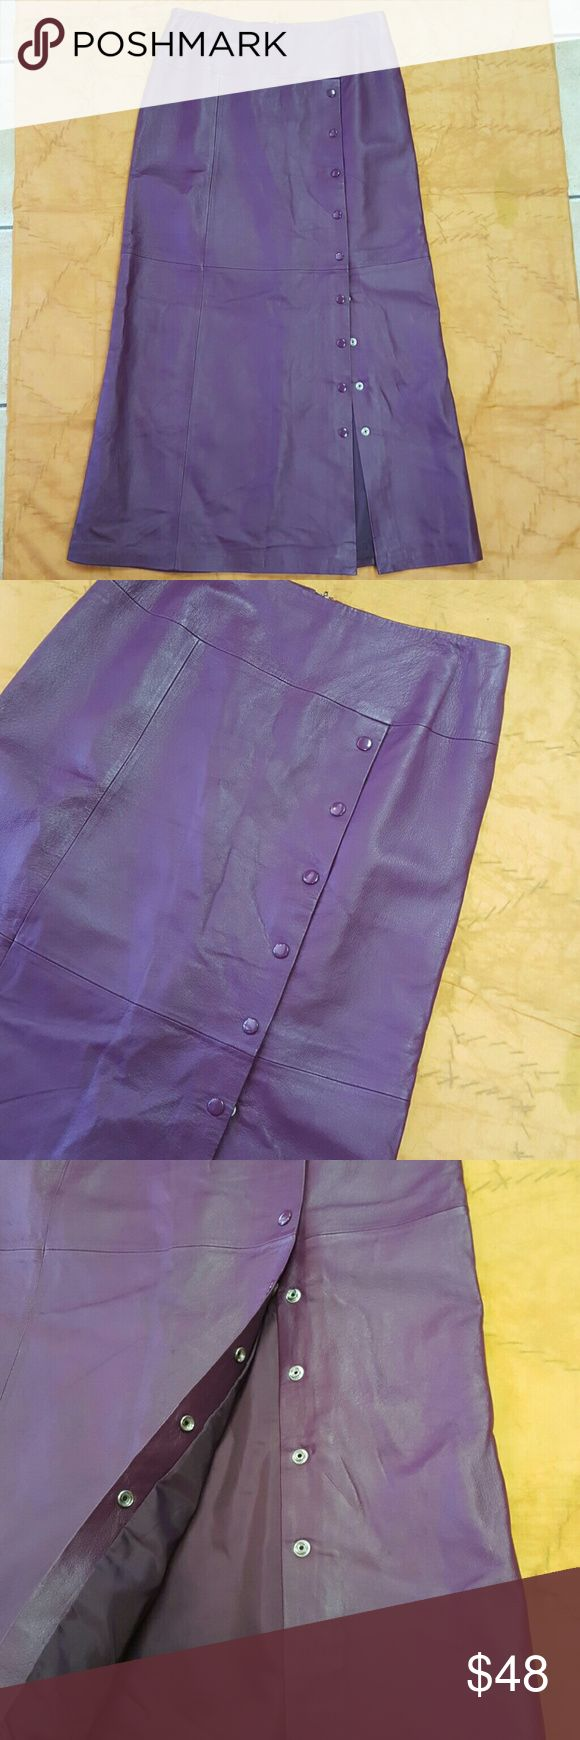 Gorgeous 100% Leather Maxi Skirt! All leather purple maxi skirt! Top three buttons are faux, otherwise it buttons down from there. Beautiful pre-owned condition. Perfect for Fall! Skirts Maxi